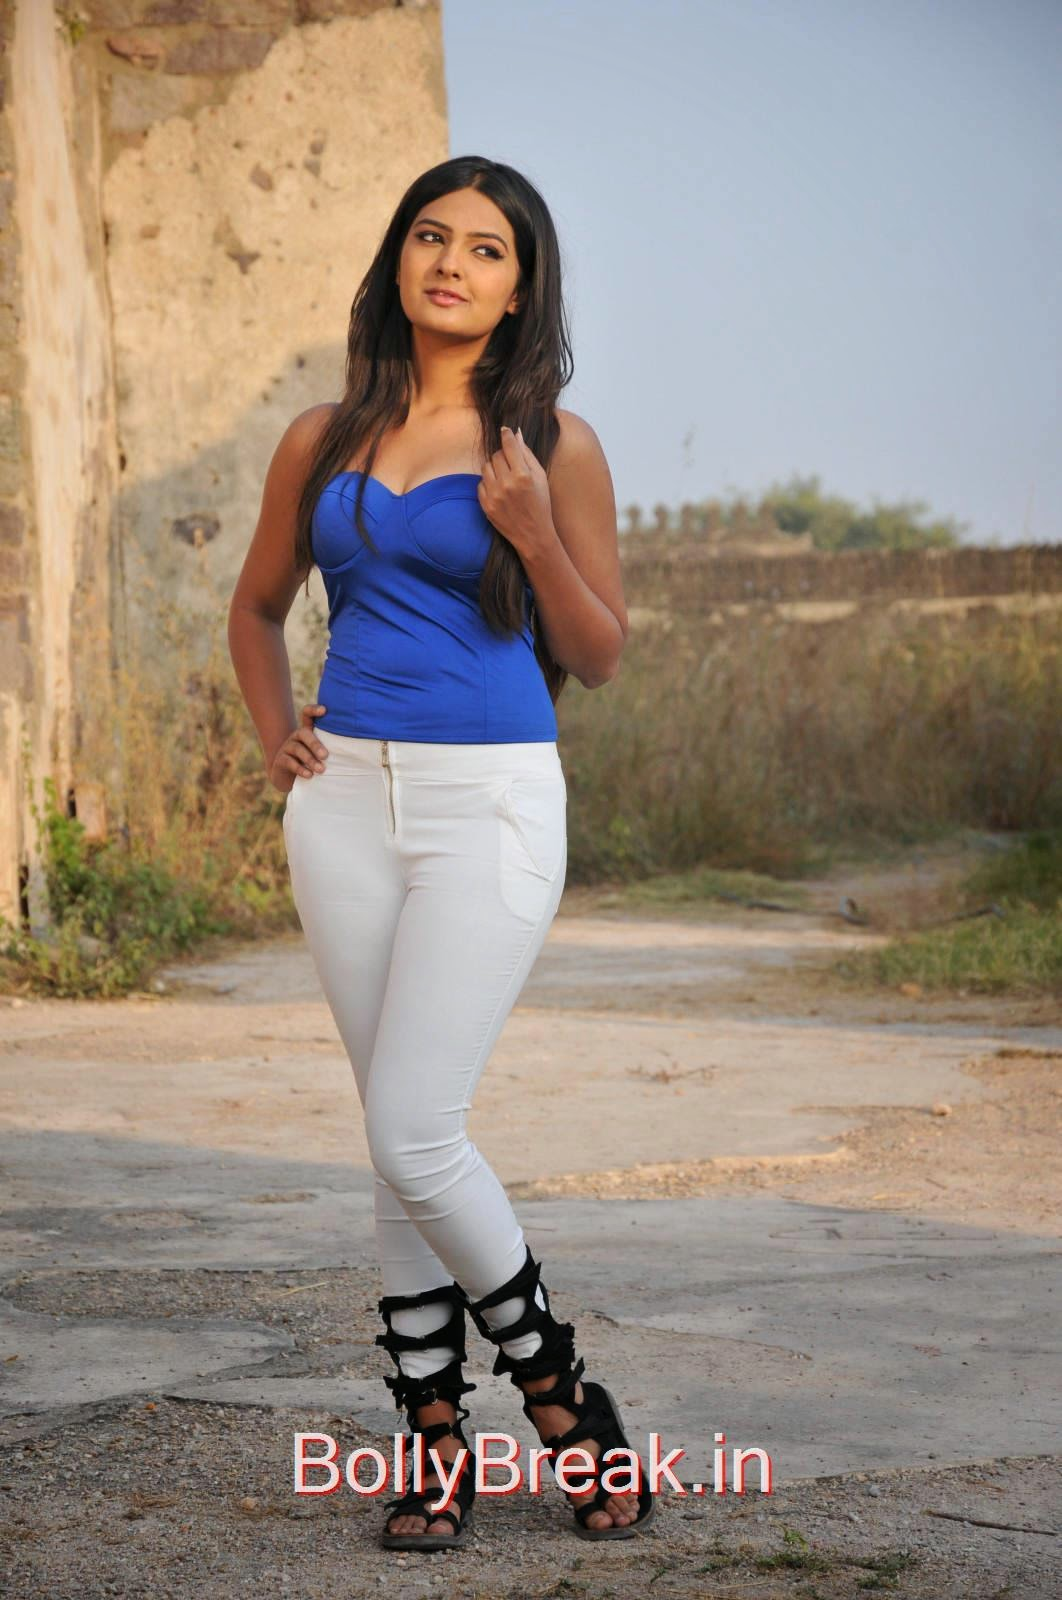 Neha Deshpande Photo Gallery, Neha Deshpande Hot Pics in blue Top, Tight Jeans from The Bells Movie